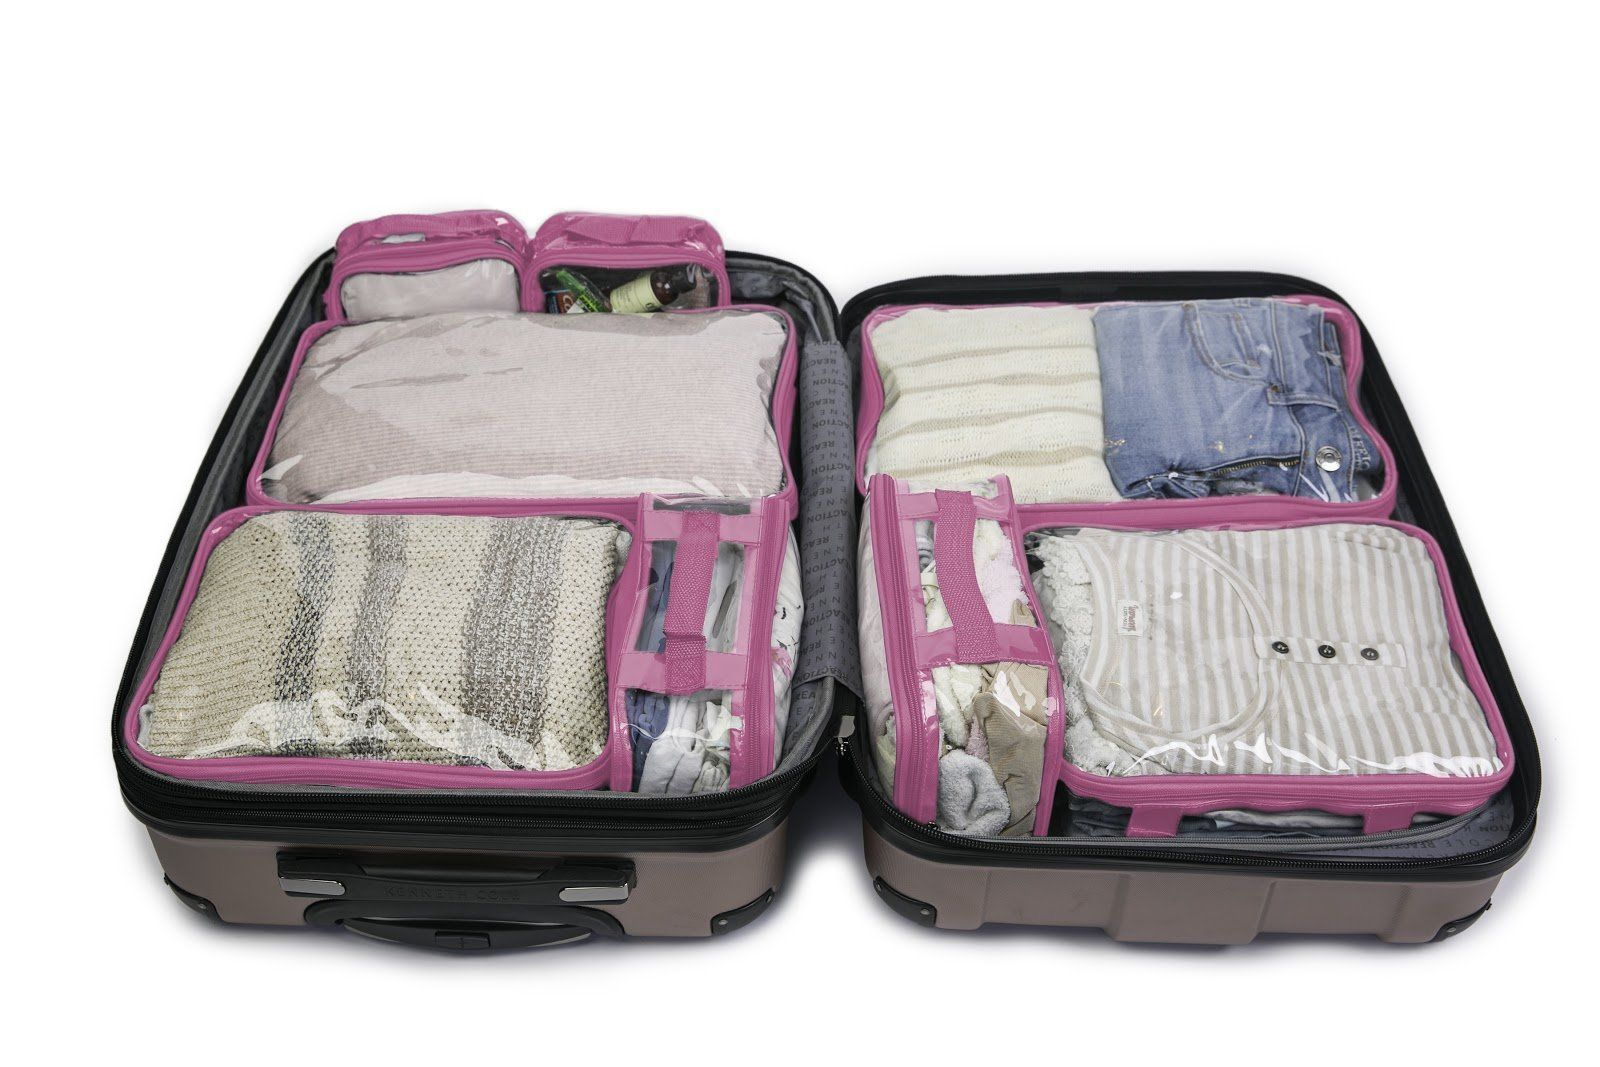 How to Pack for College: Best Tips And To Do's for Moms #collegepackinglist The Only Ultimate College Packing List You Need!   Download this free complete college packing list or use our printable college packing list for easy checking off! This college freshman packing list covers all the items you'll need for your dorm, bedroom, bathroom, and even kitchen. Don't forget the little things! #collegepackinglist How to Pack for College: Best Tips And To Do's for Moms #collegepackinglist The Onl #collegepackinglist